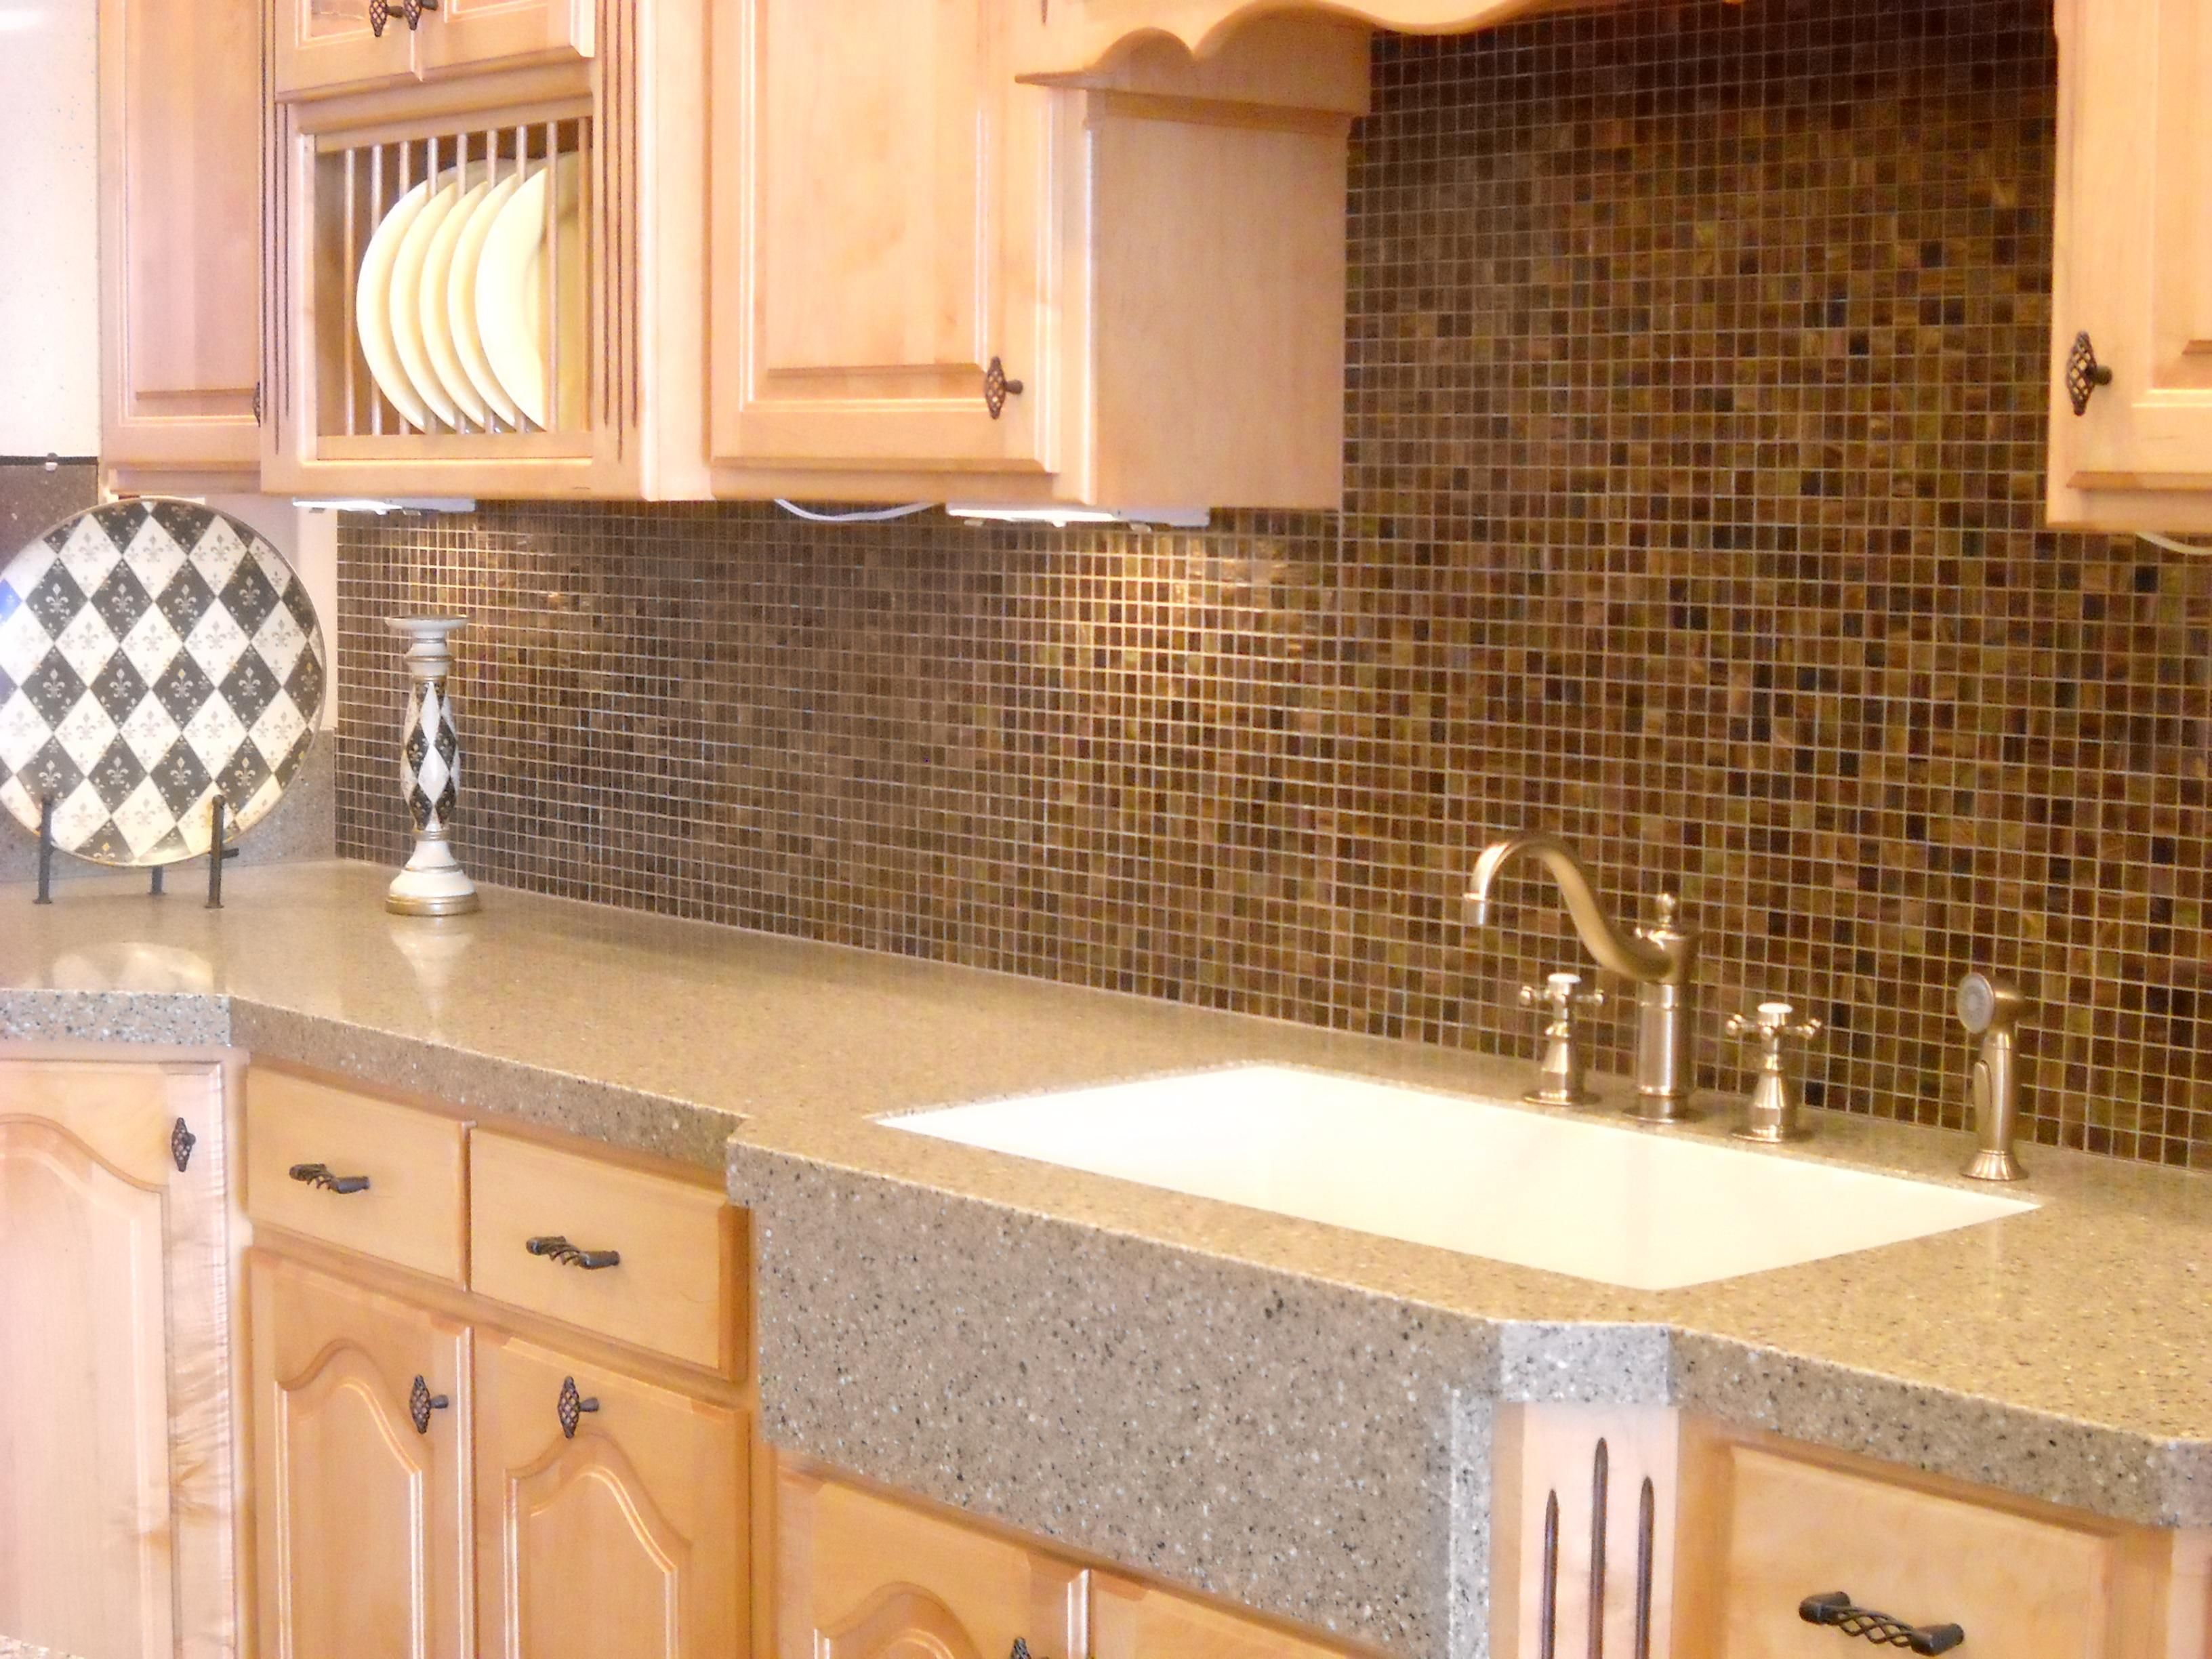 I Like The Combination Of Undermount Sink With The Granite Overlay Which Ties Into The Trendy Farmhouse Kitchen Farmhouse Chic Kitchen Farmhouse Sink Kitchen